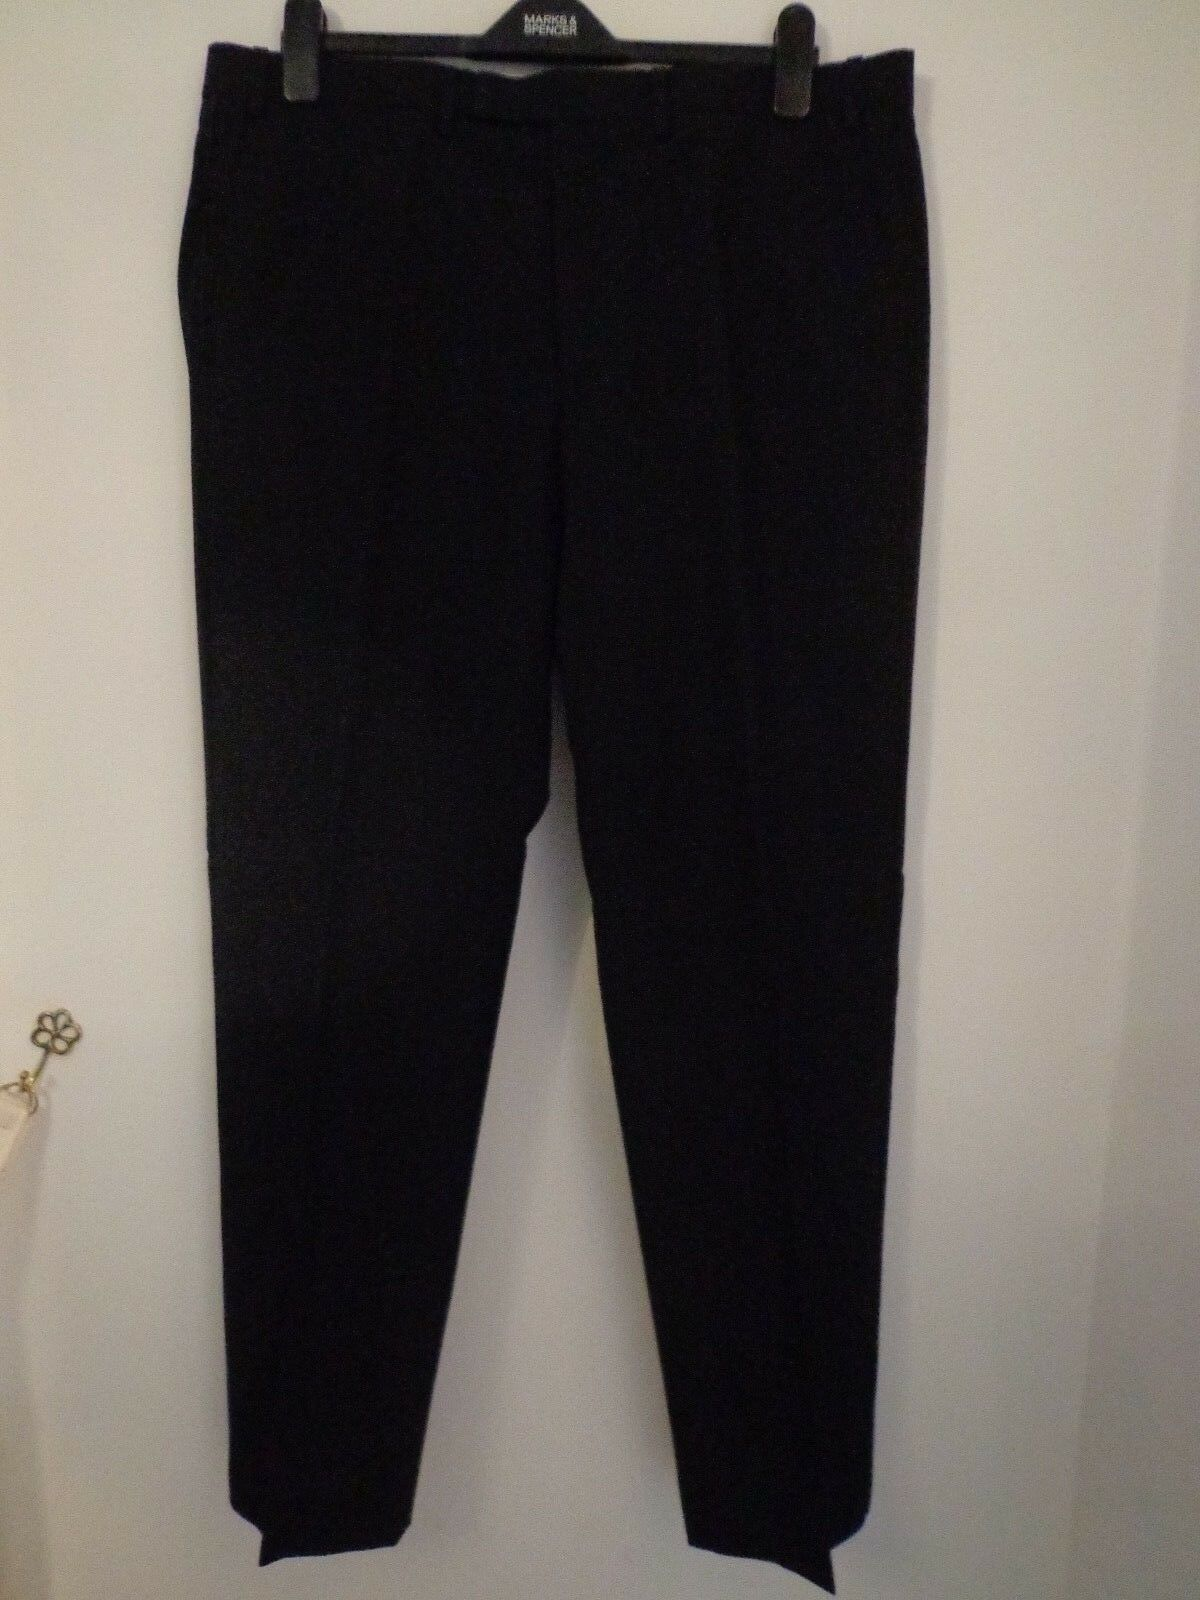 BNWT MENS M&S COLLECTION LUXURY RANGE DINNER DRESSED TROUSERS WAIST 42  I L 31